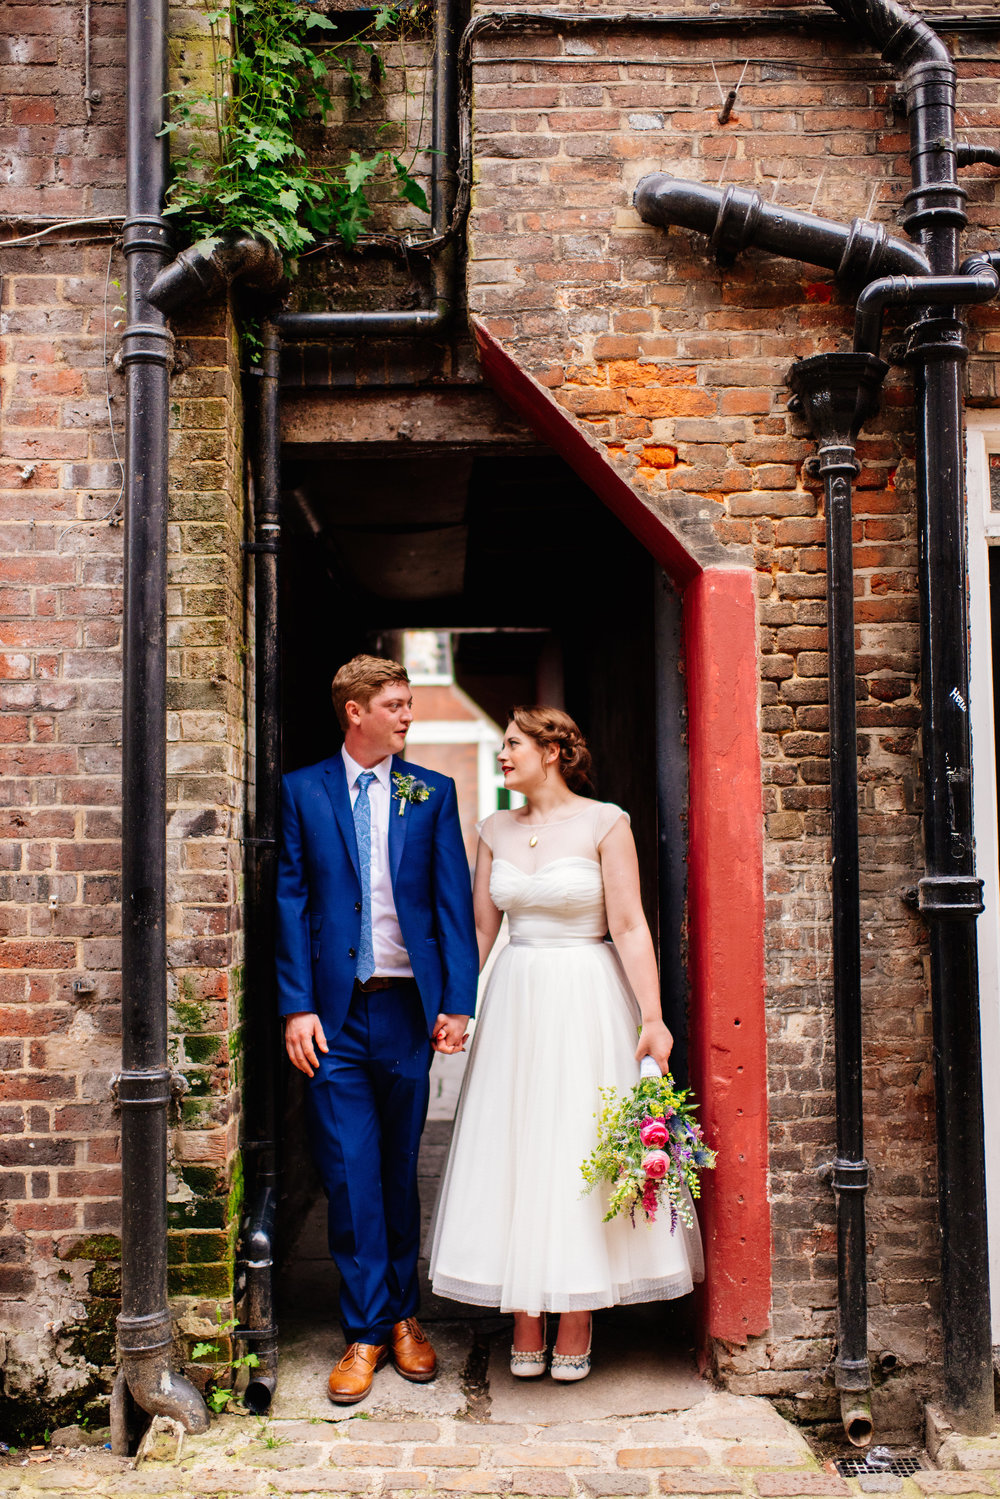 153 Emily + Daniel | Berkhamsted Towhall Wedding London Wedding Photographer Bride Groom Watford.jpg